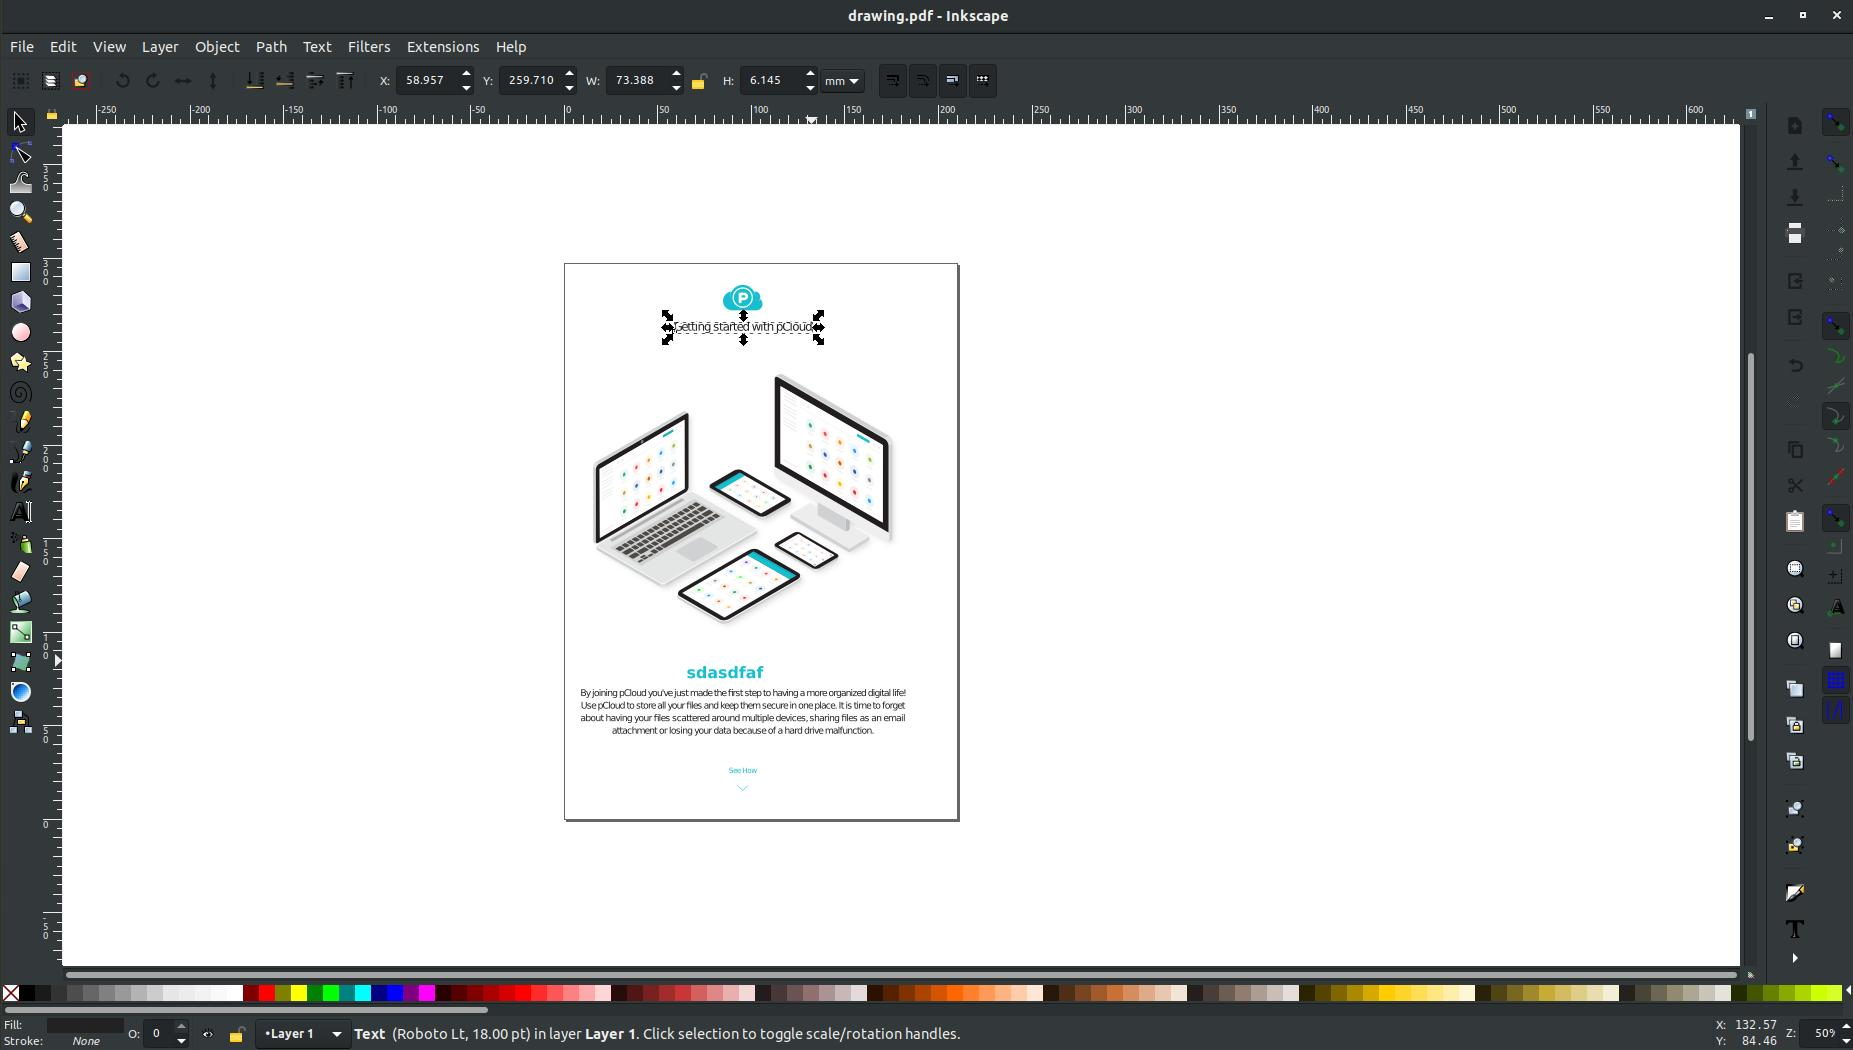 inkscape pdf editor for Linux - Best Linux PDF Editors to Edit PDFs for Free